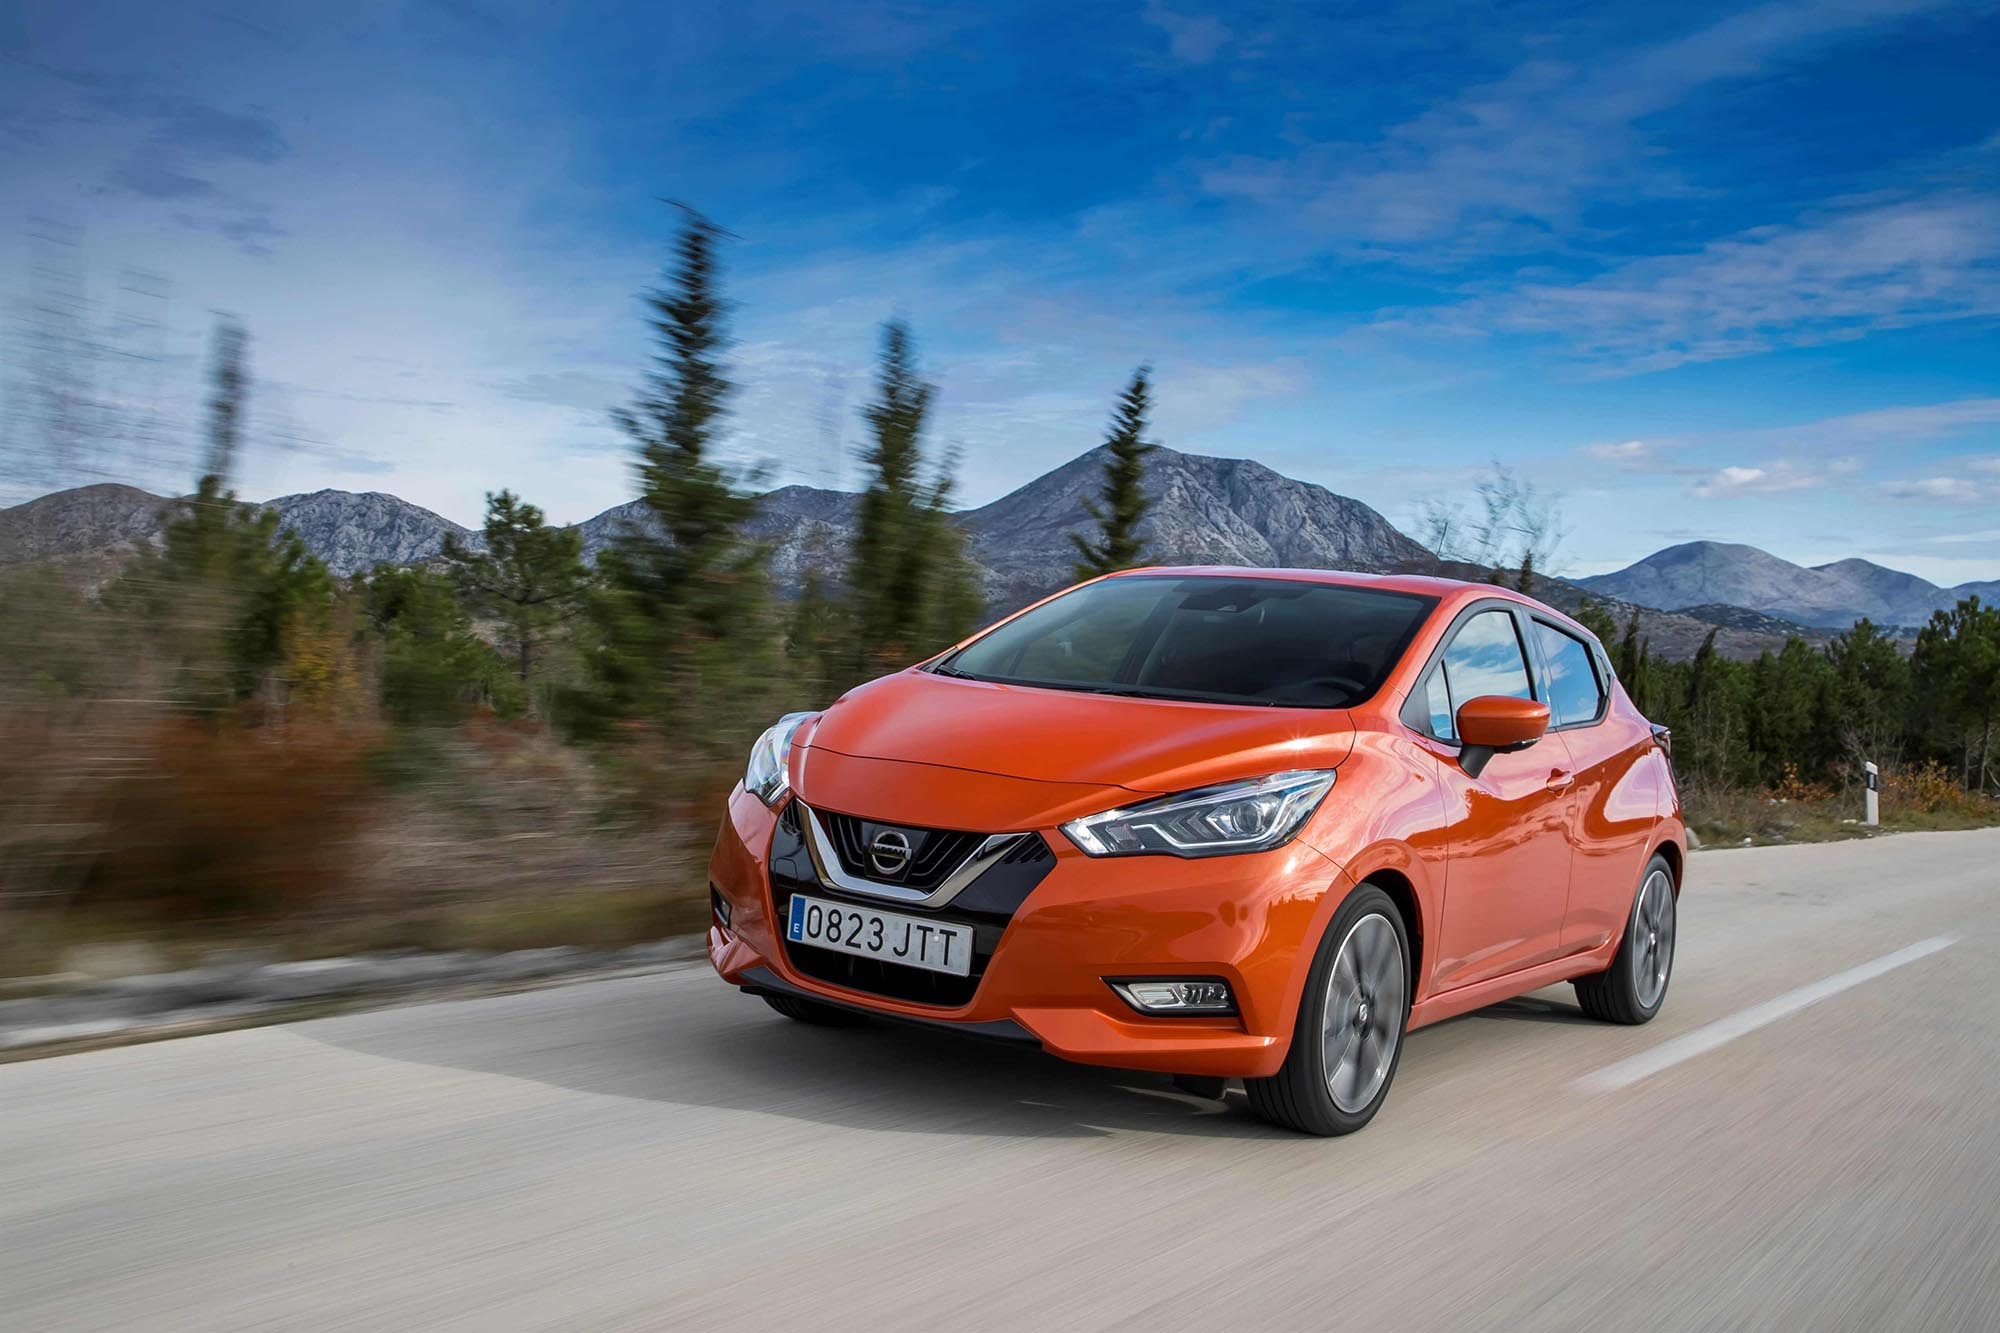 2018 Nissan Micra wins Car of the Year at Firstcar Awards